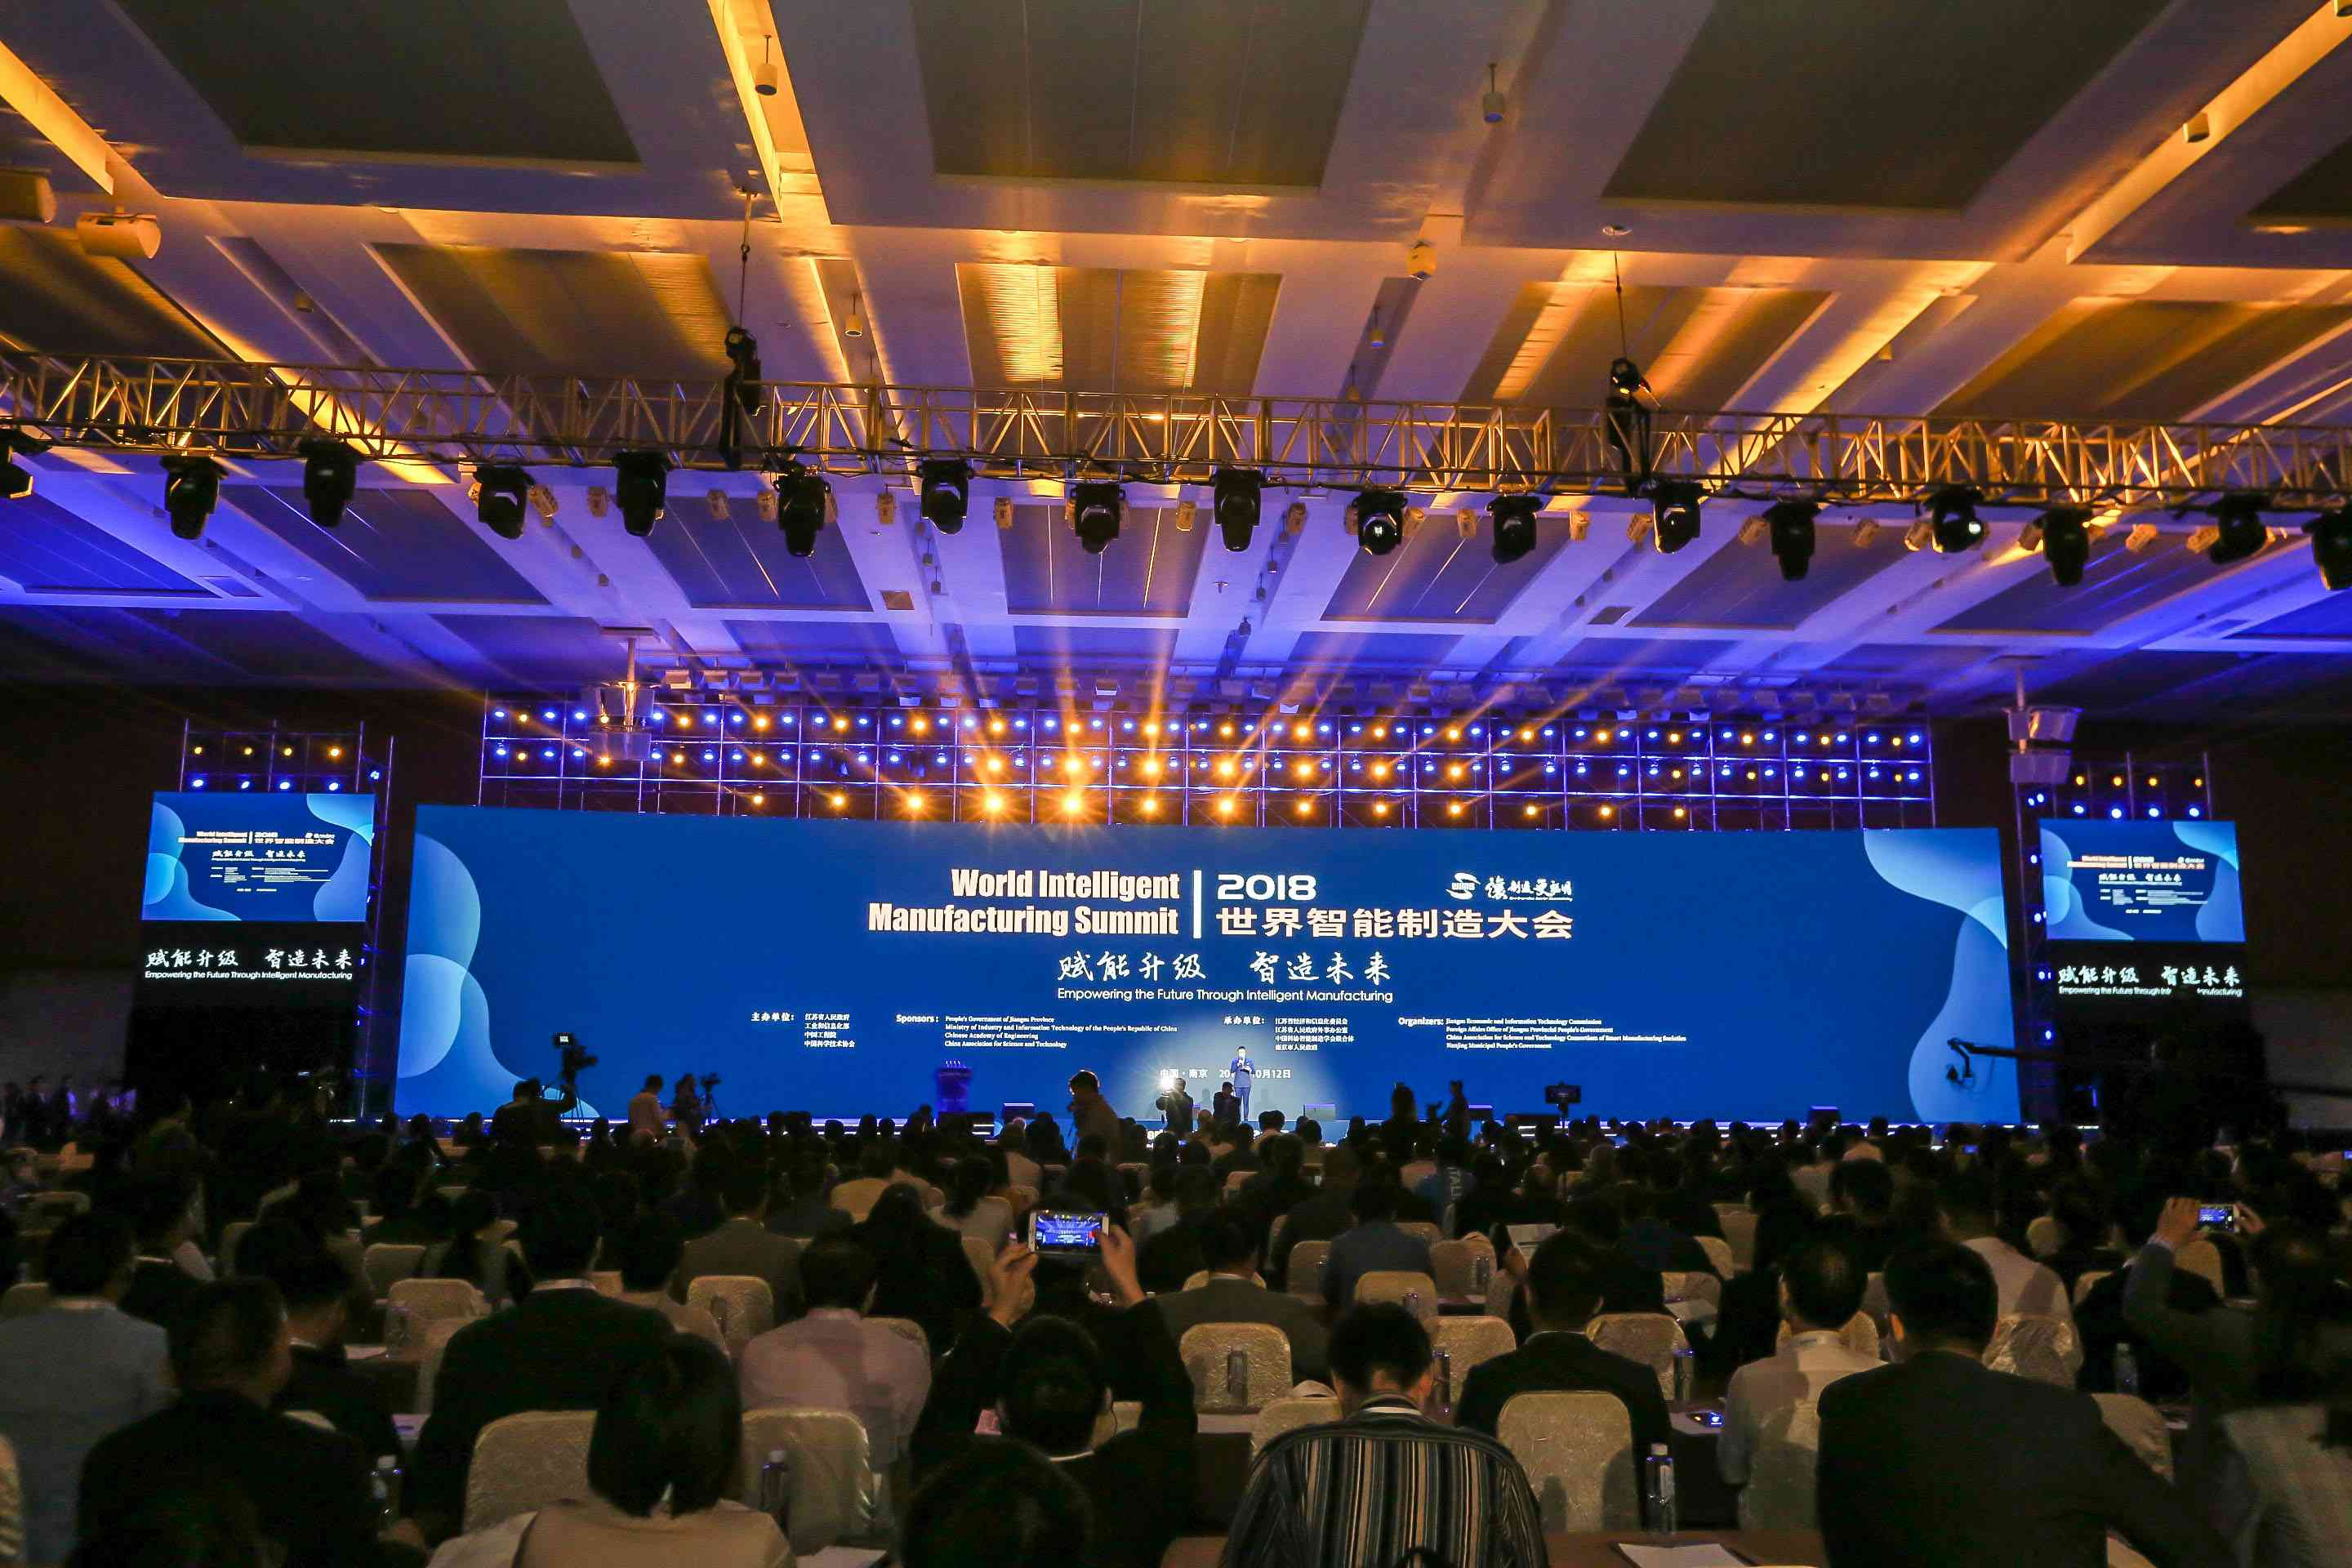 Industry leaders bring smarter solutions for China's